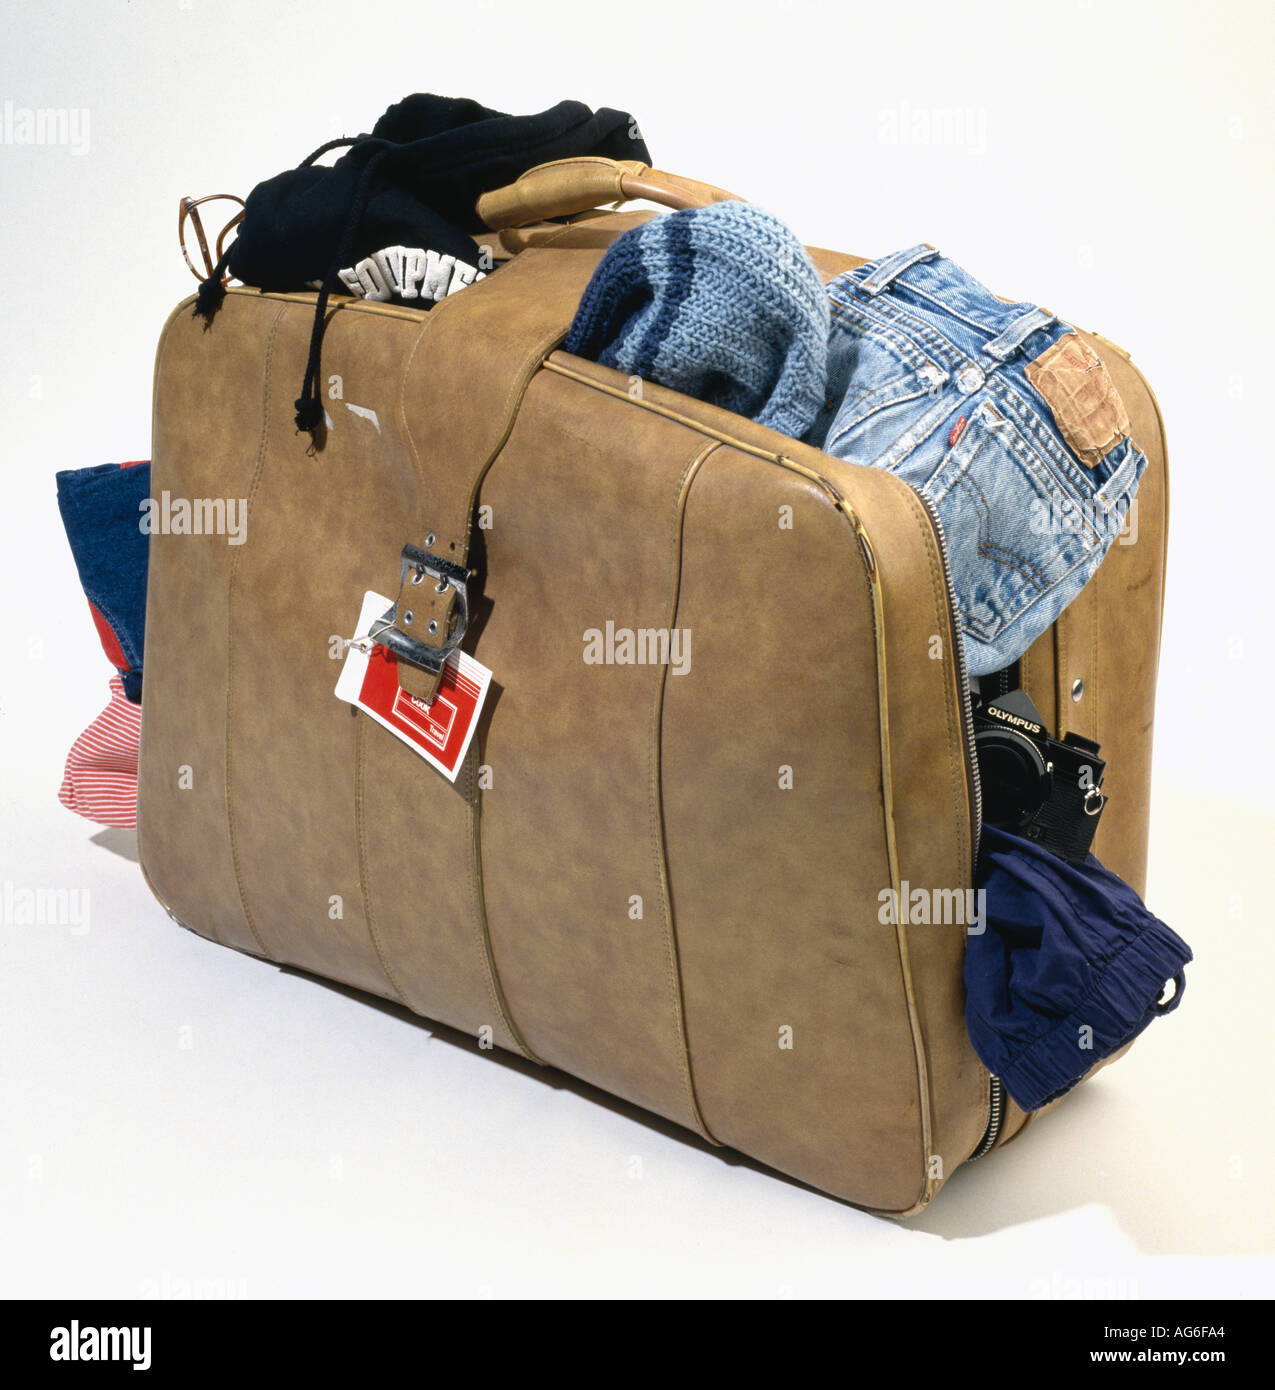 overflowing suitcase - Stock Image